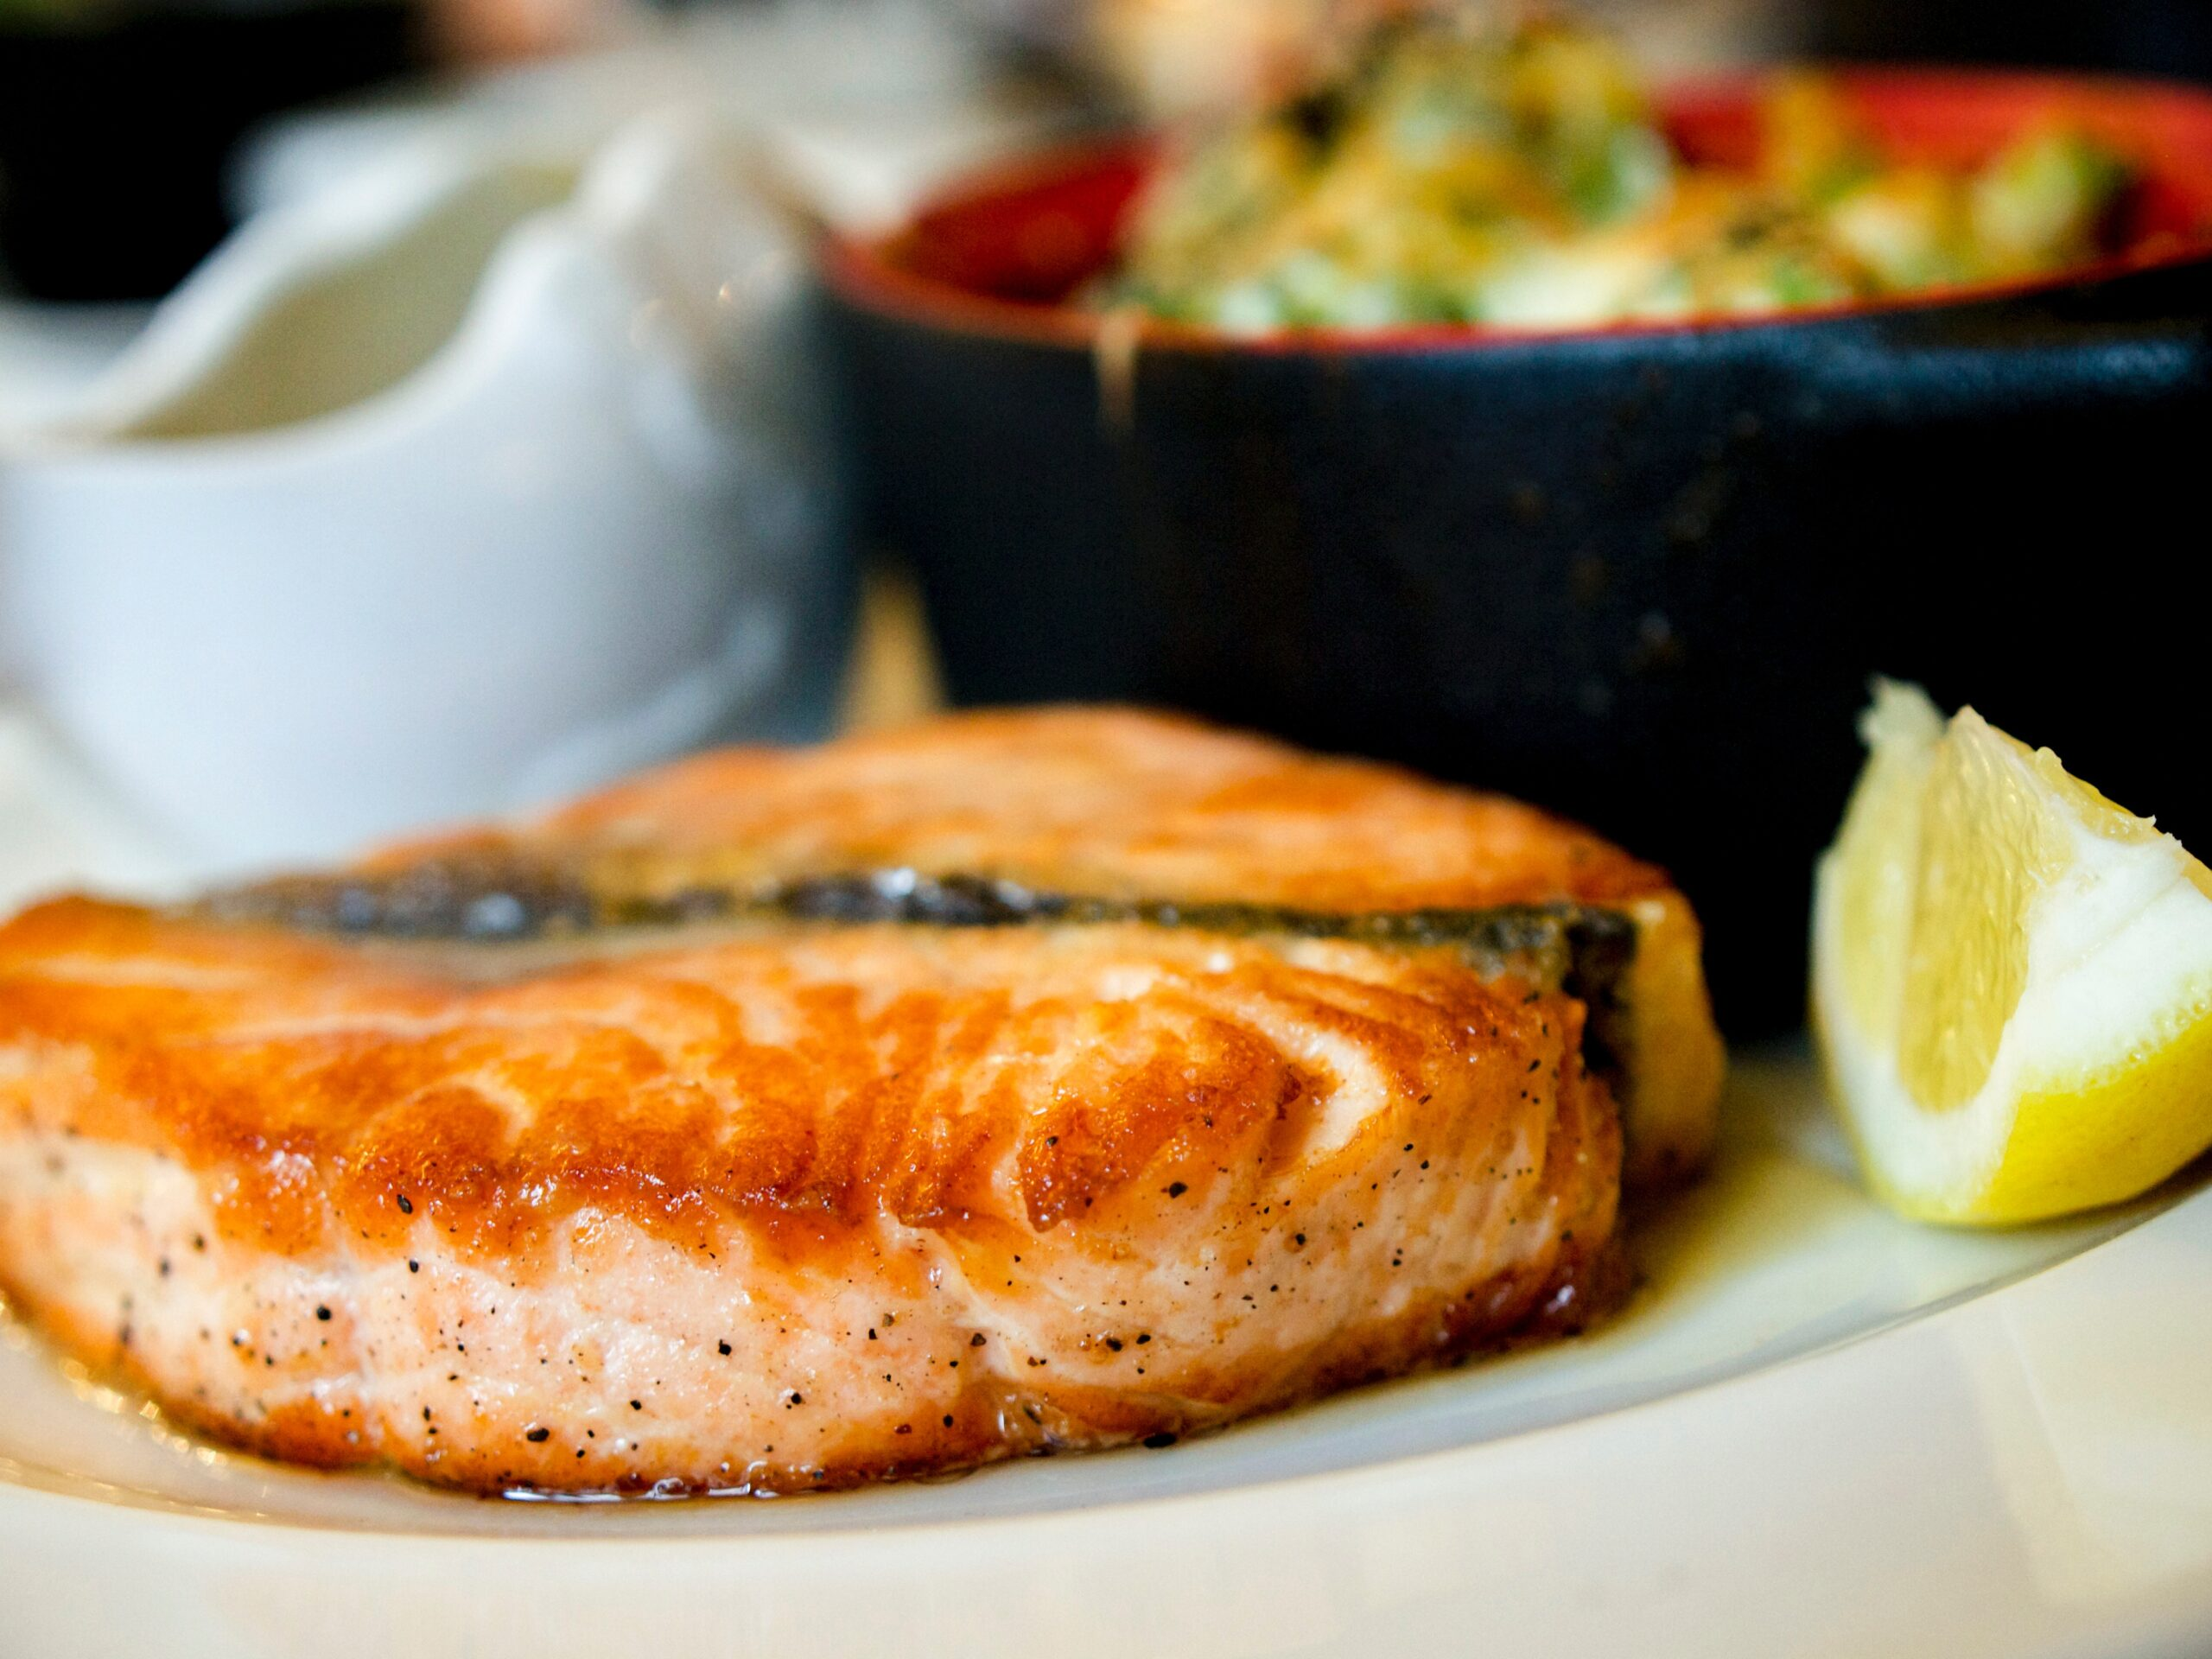 cooked-fish-on-plate-2374946